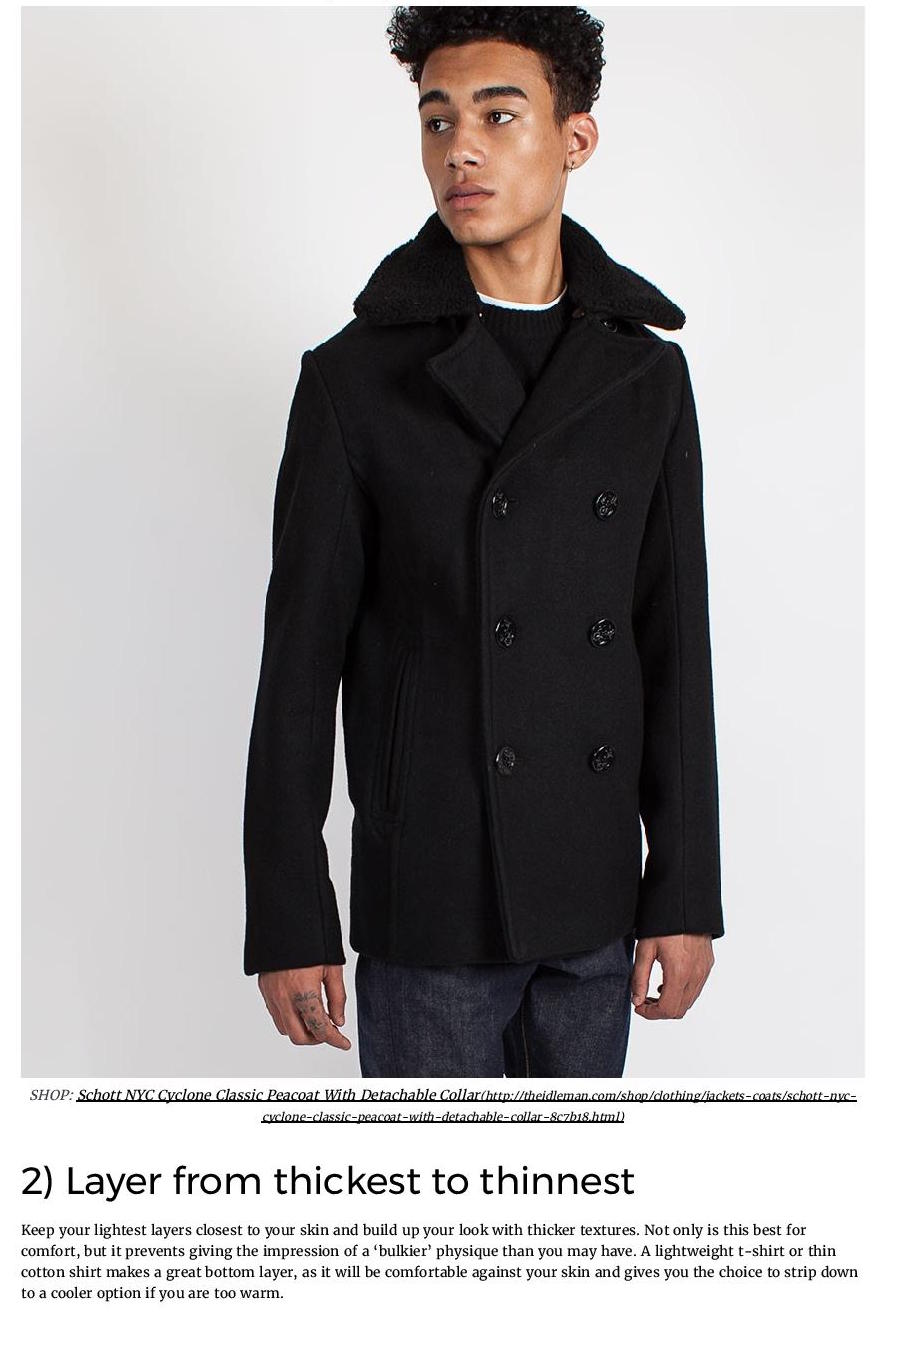 10 Quick Tips for Layering Your Outfit _ The Idle Man-page-002.jpg